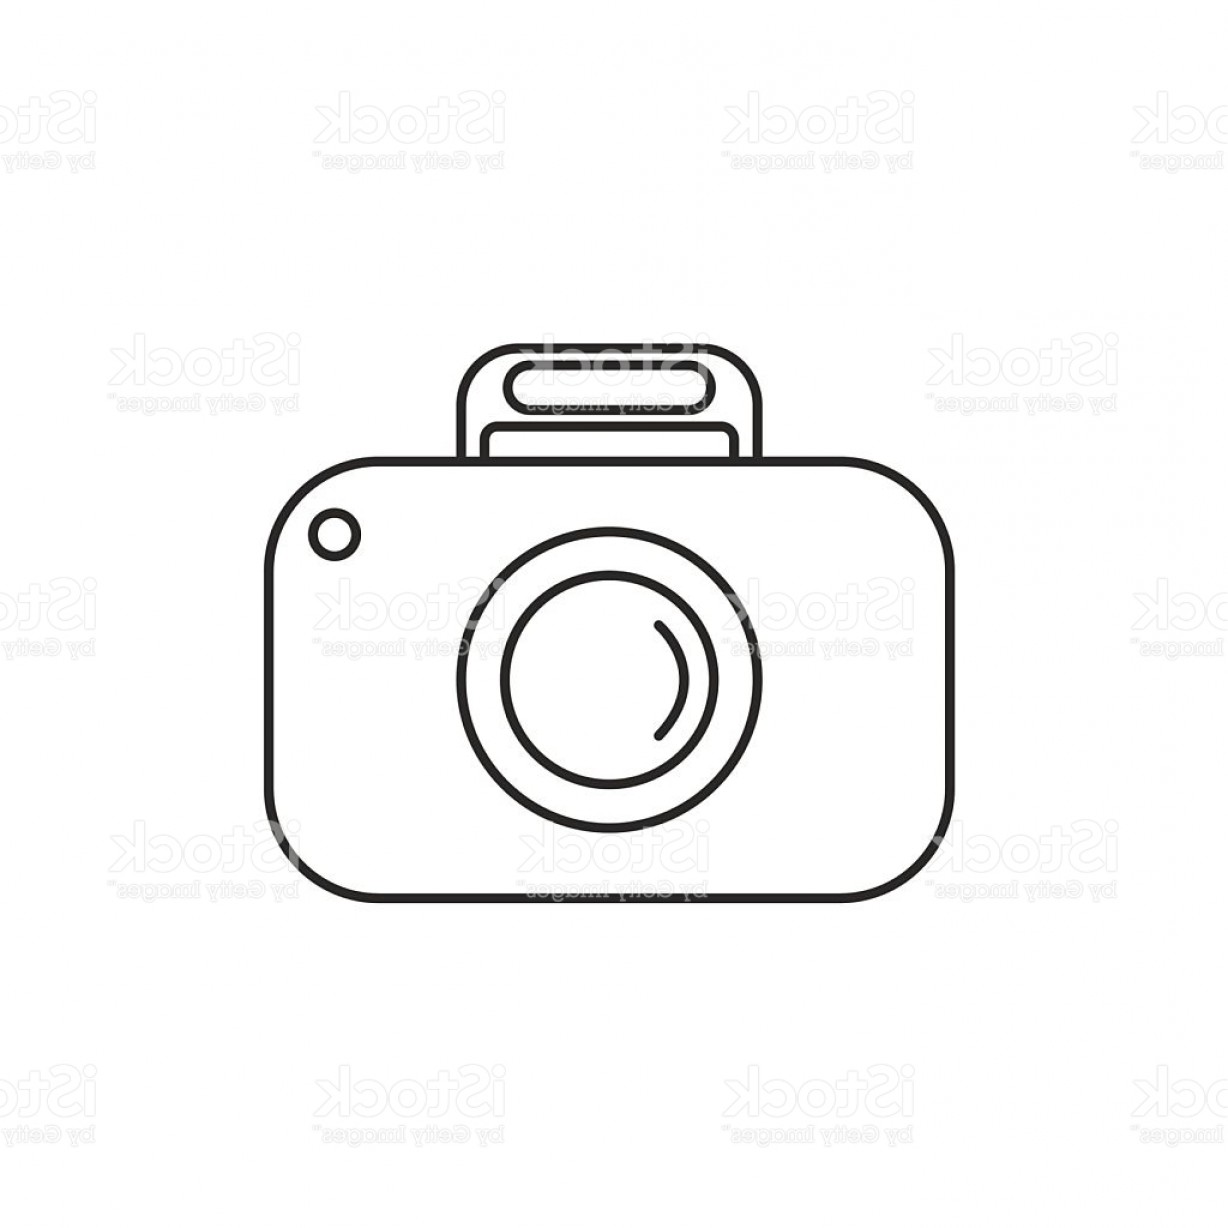 Camera Outline Vector Graphic: Outline Camera Icon On White Background Gm